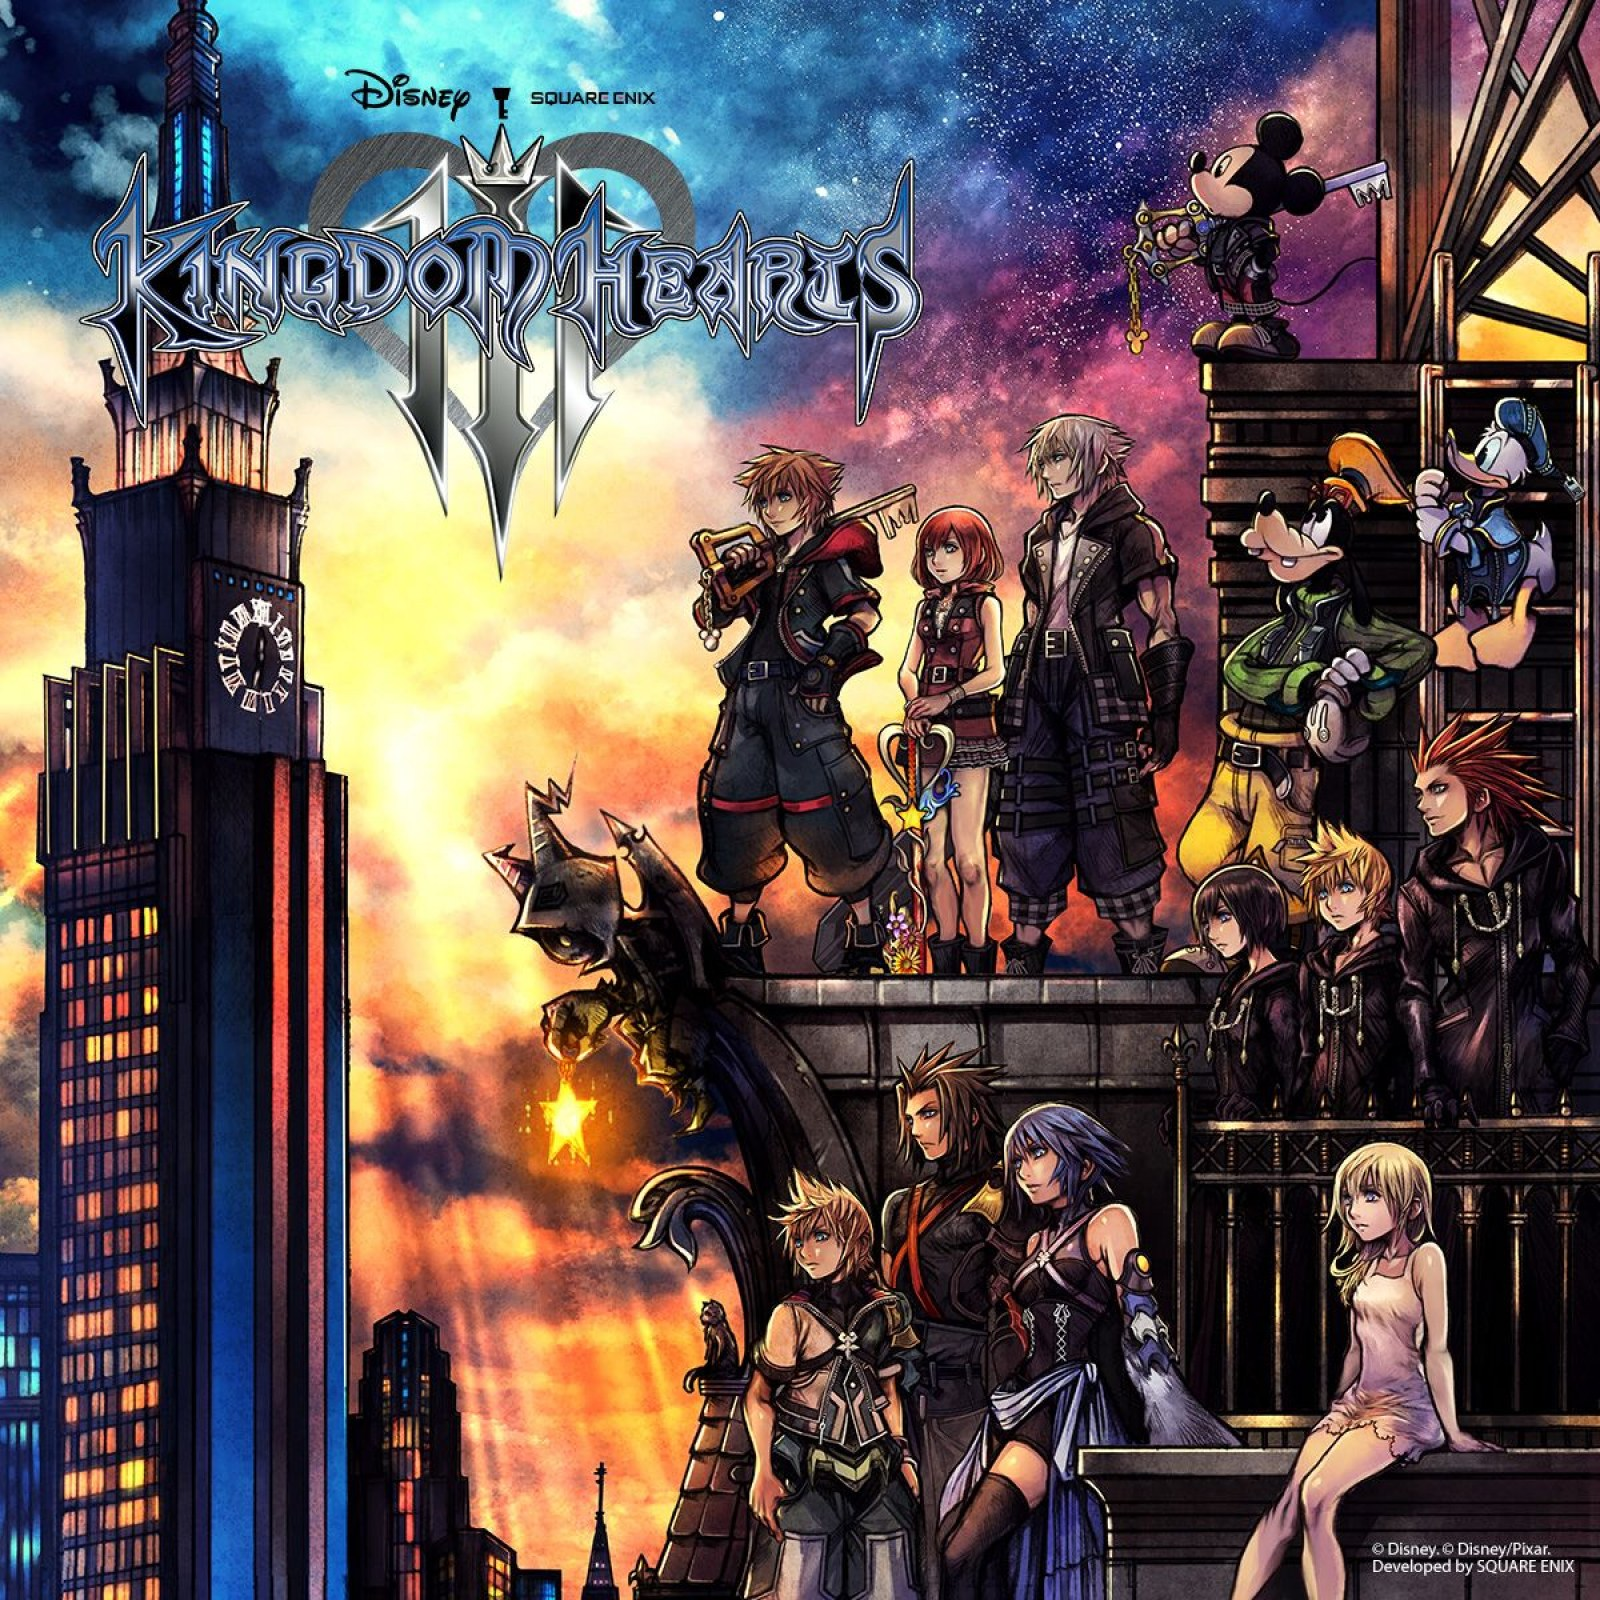 Kingdom Hearts 3' Play Time: How Long Does it Take to Stop